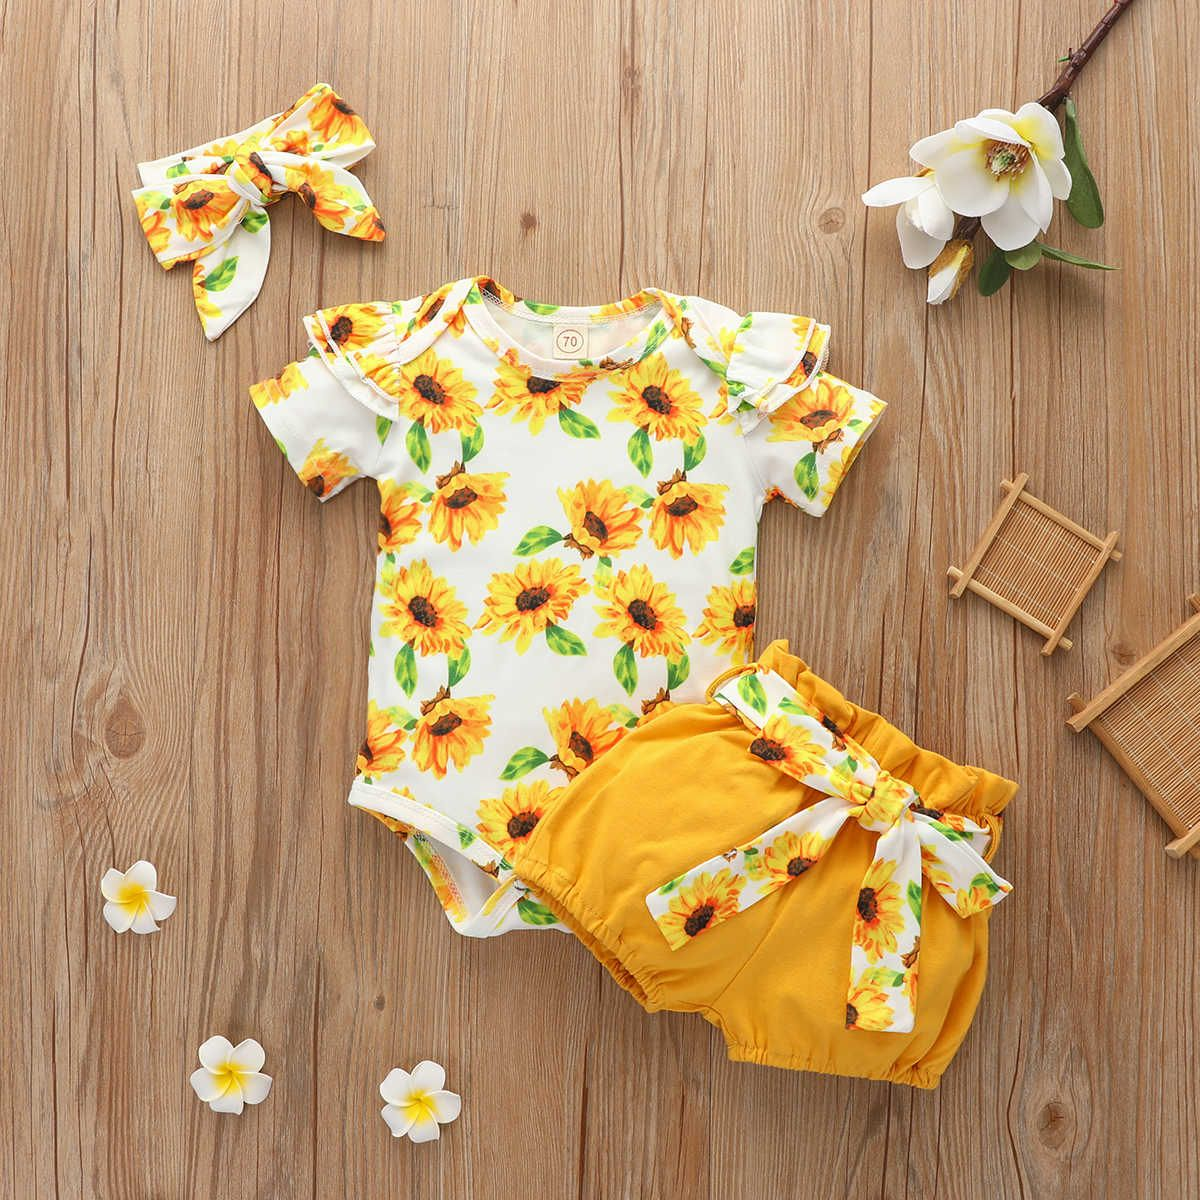 Pudcoco Newborn Set Baby Girl Print Short Sleeve Sunflower Leopard Child Girl Set Toddler Girl Clothes 0 18 Months Clothing Sets Aliexpress Baby Girl Floral Outfit Toddler Girl Outfits Baby Girl Newborn